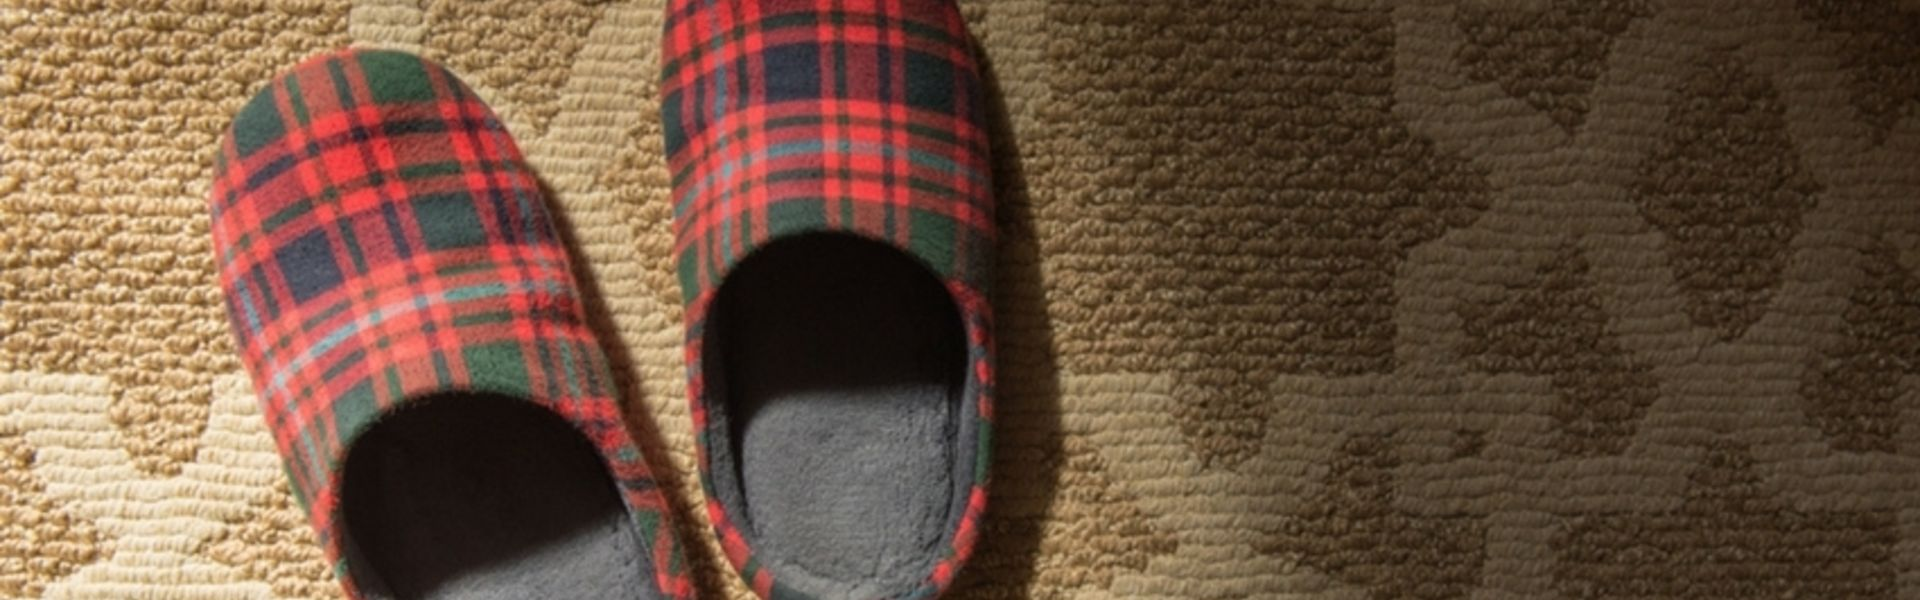 How your new Christmas slippers could prevent falls